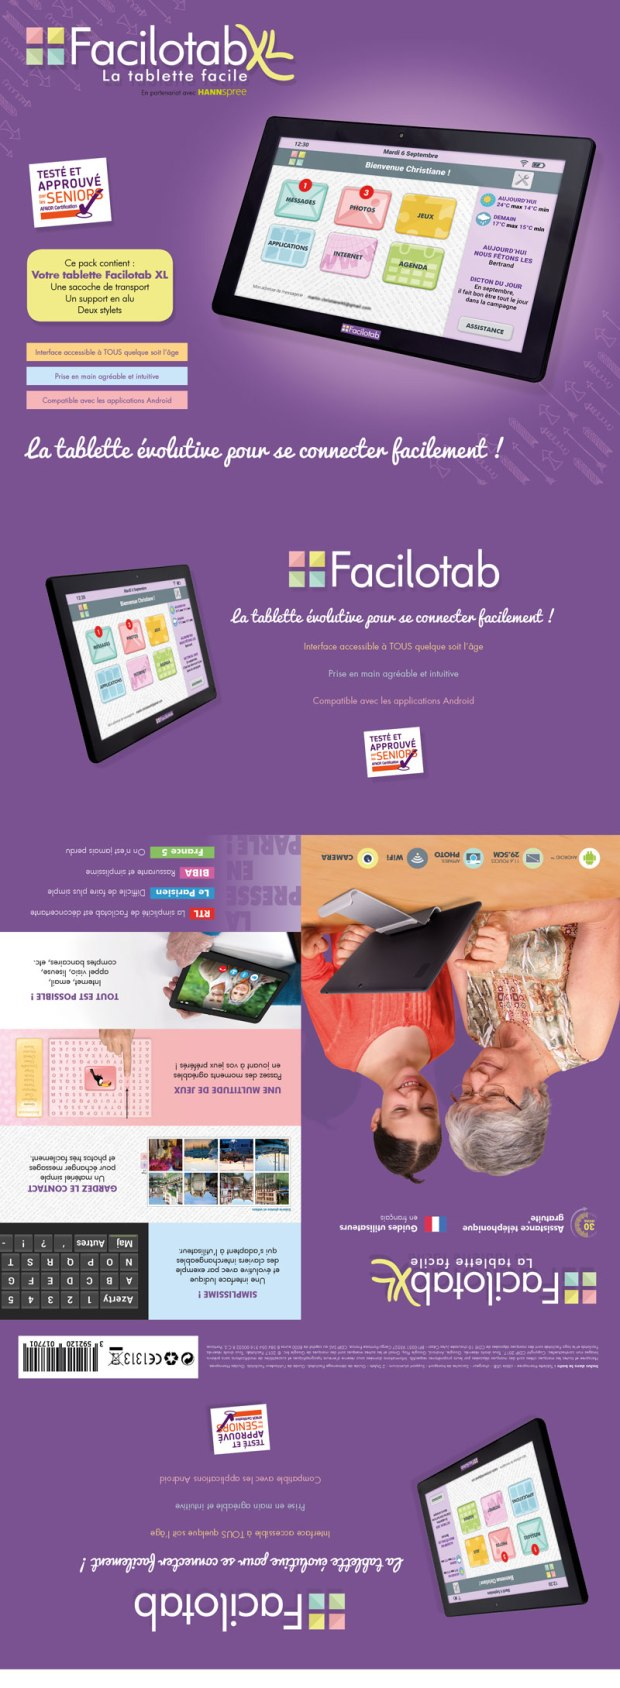 FACILOTAB-fourreau-pack-Xl-2018